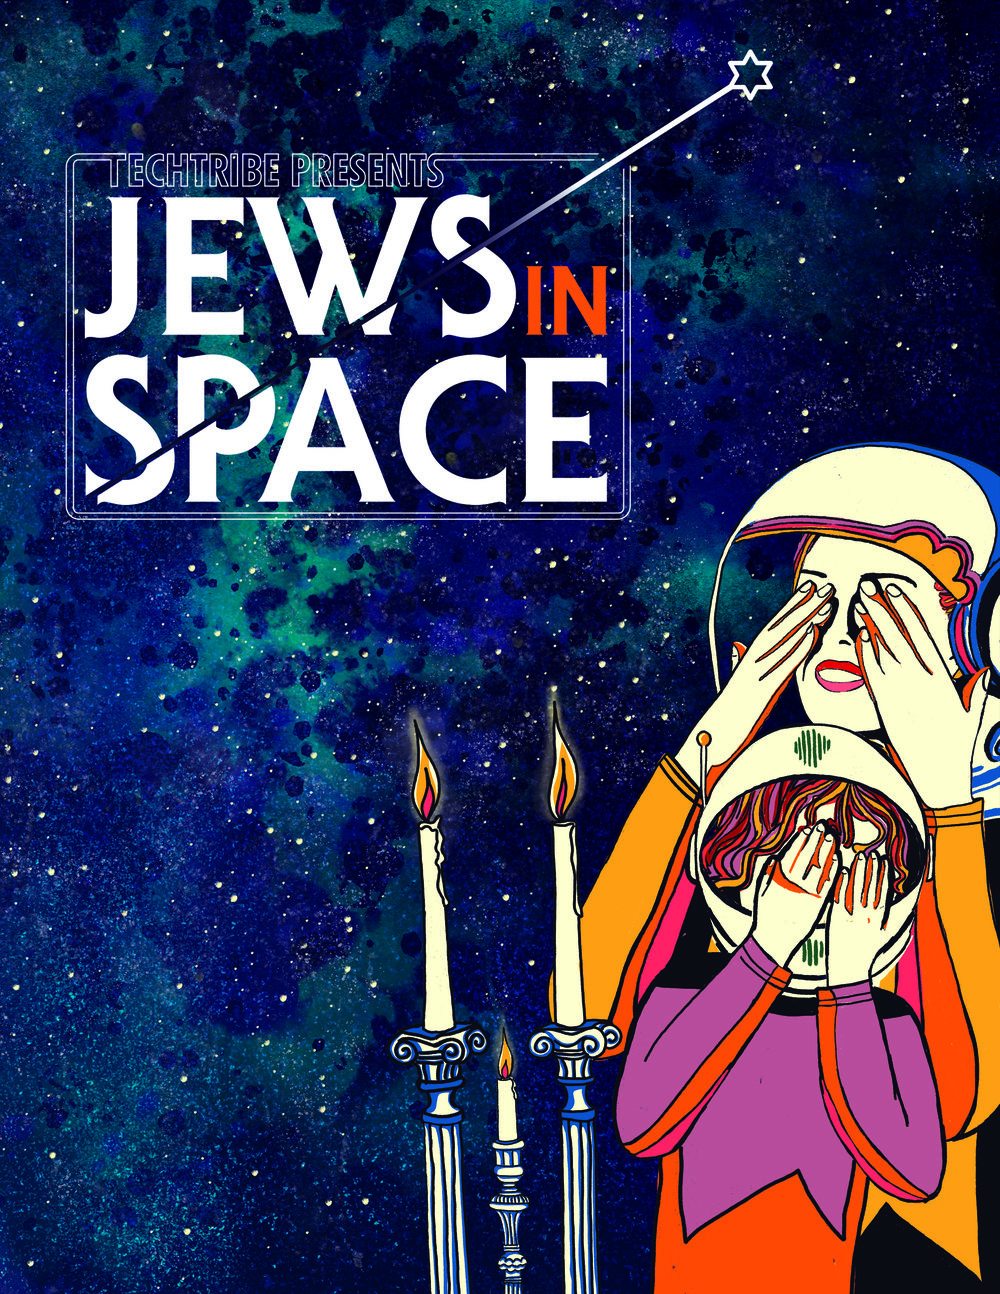 Our First Jews in Space event